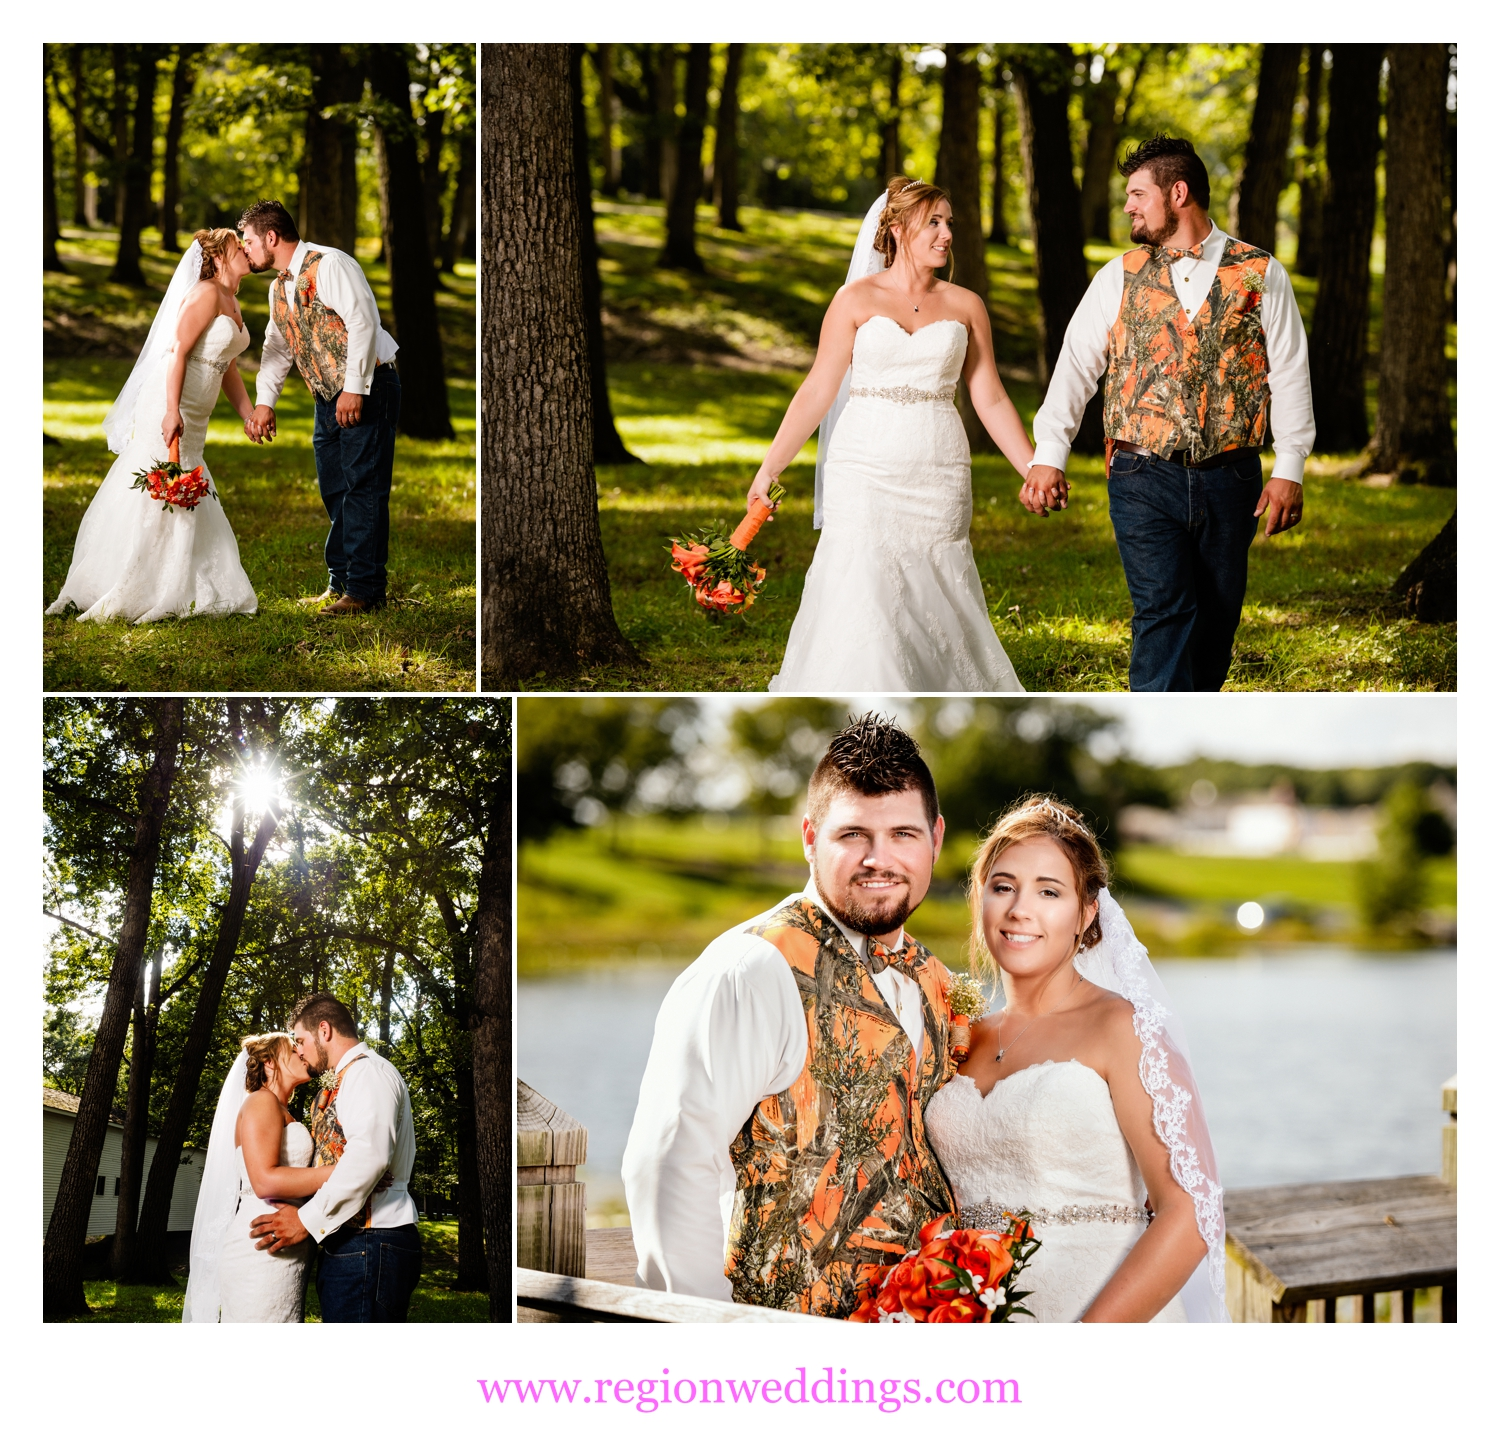 Bride and groom photos at The Lake County Fairgrounds in Crown Point, Indiana.